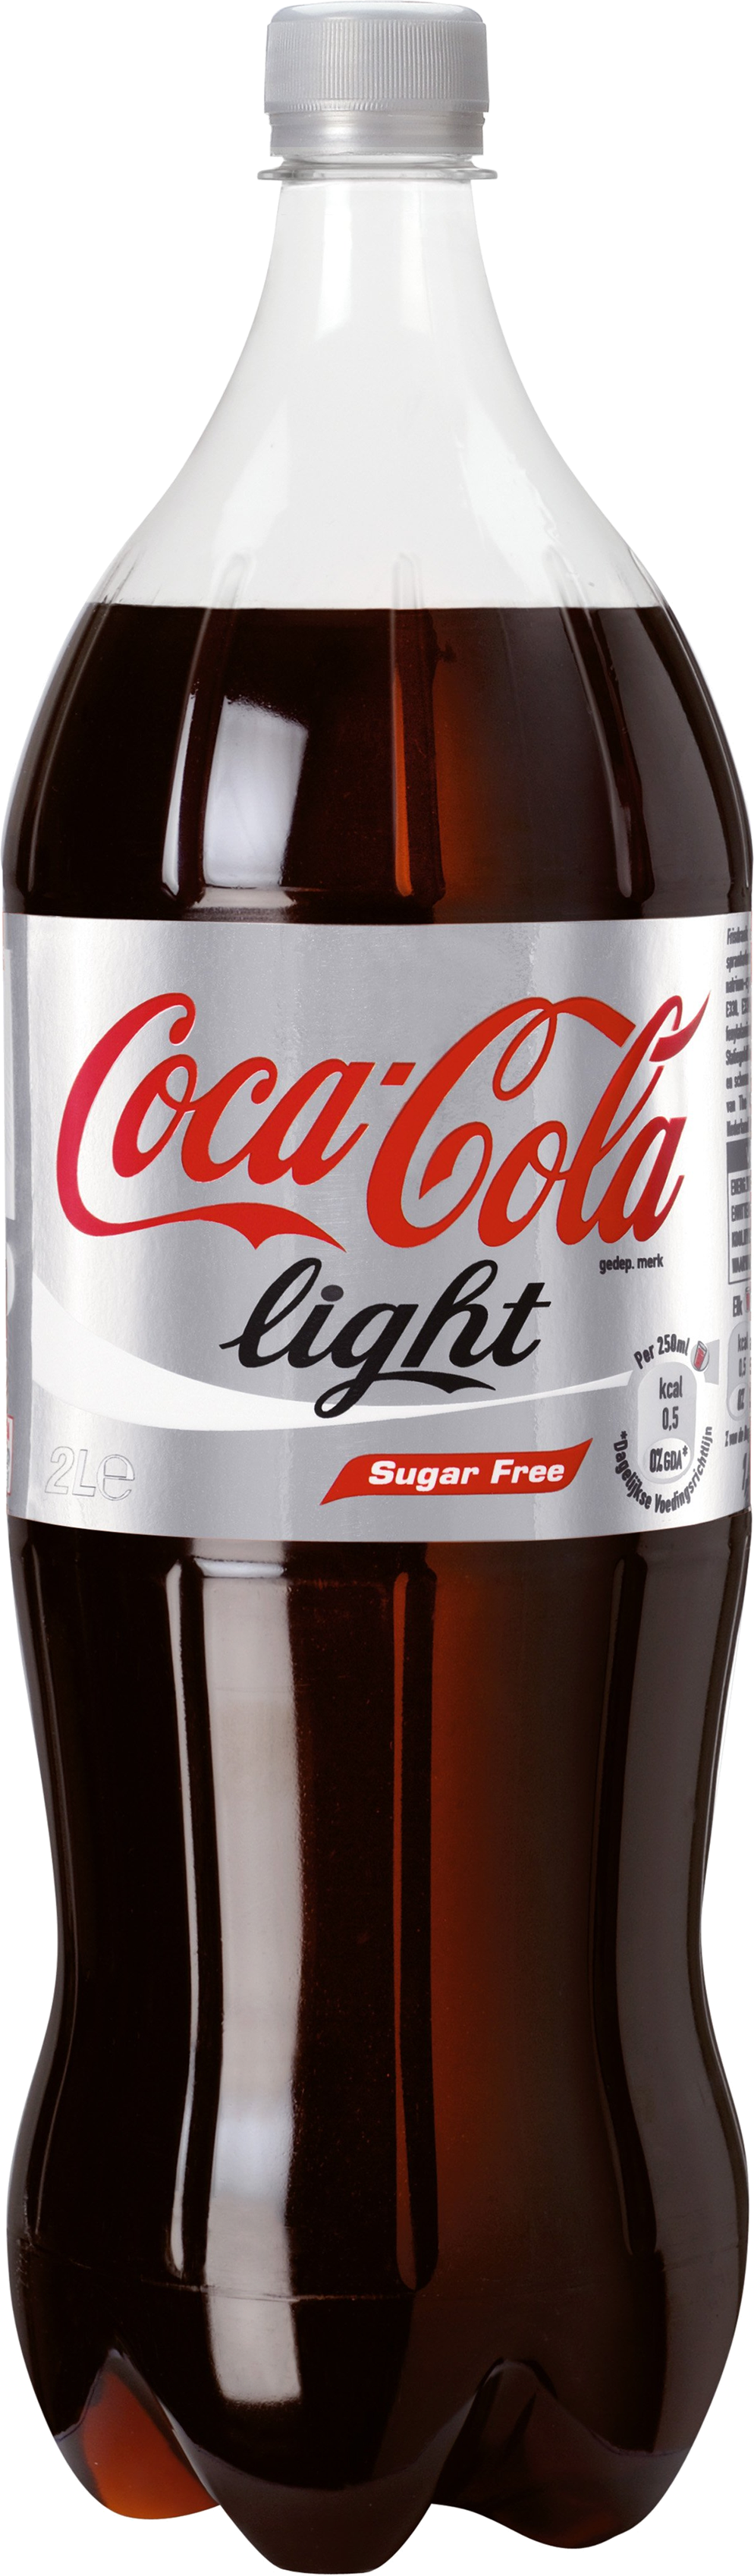 Coca Cola bottle PNG image transparent